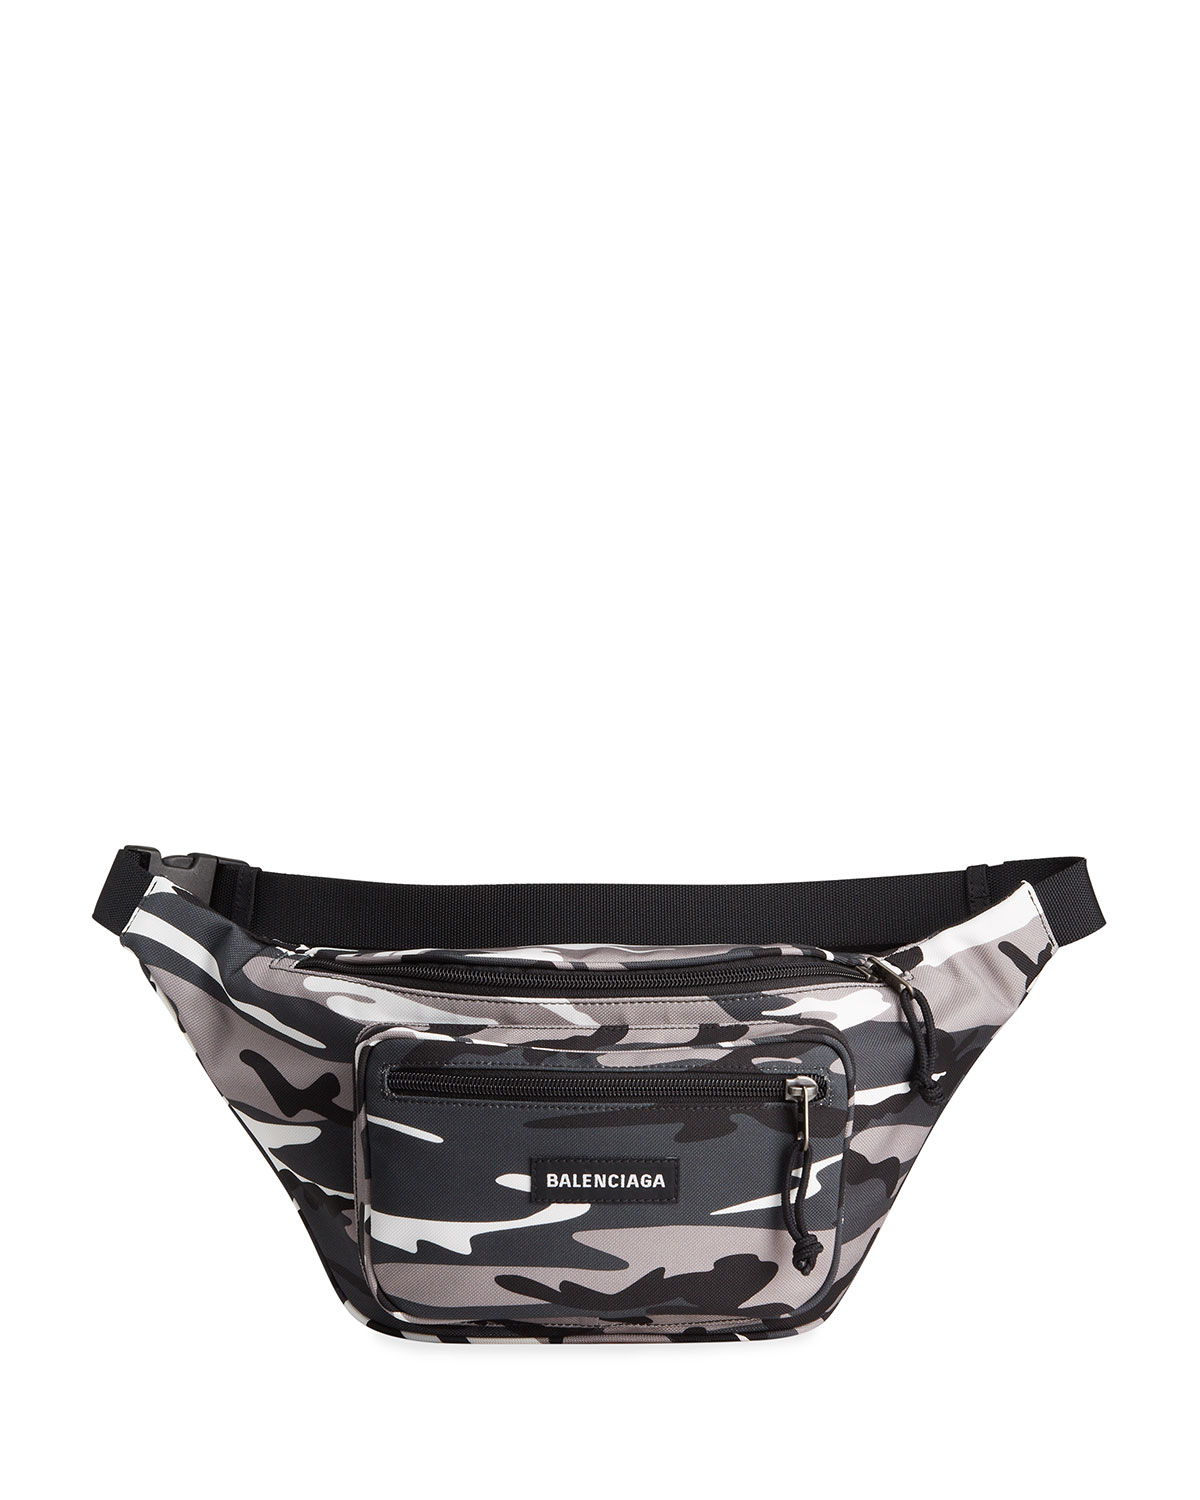 Balenciaga MEN'S EXPLORER CAMO NYLON BELT BAG